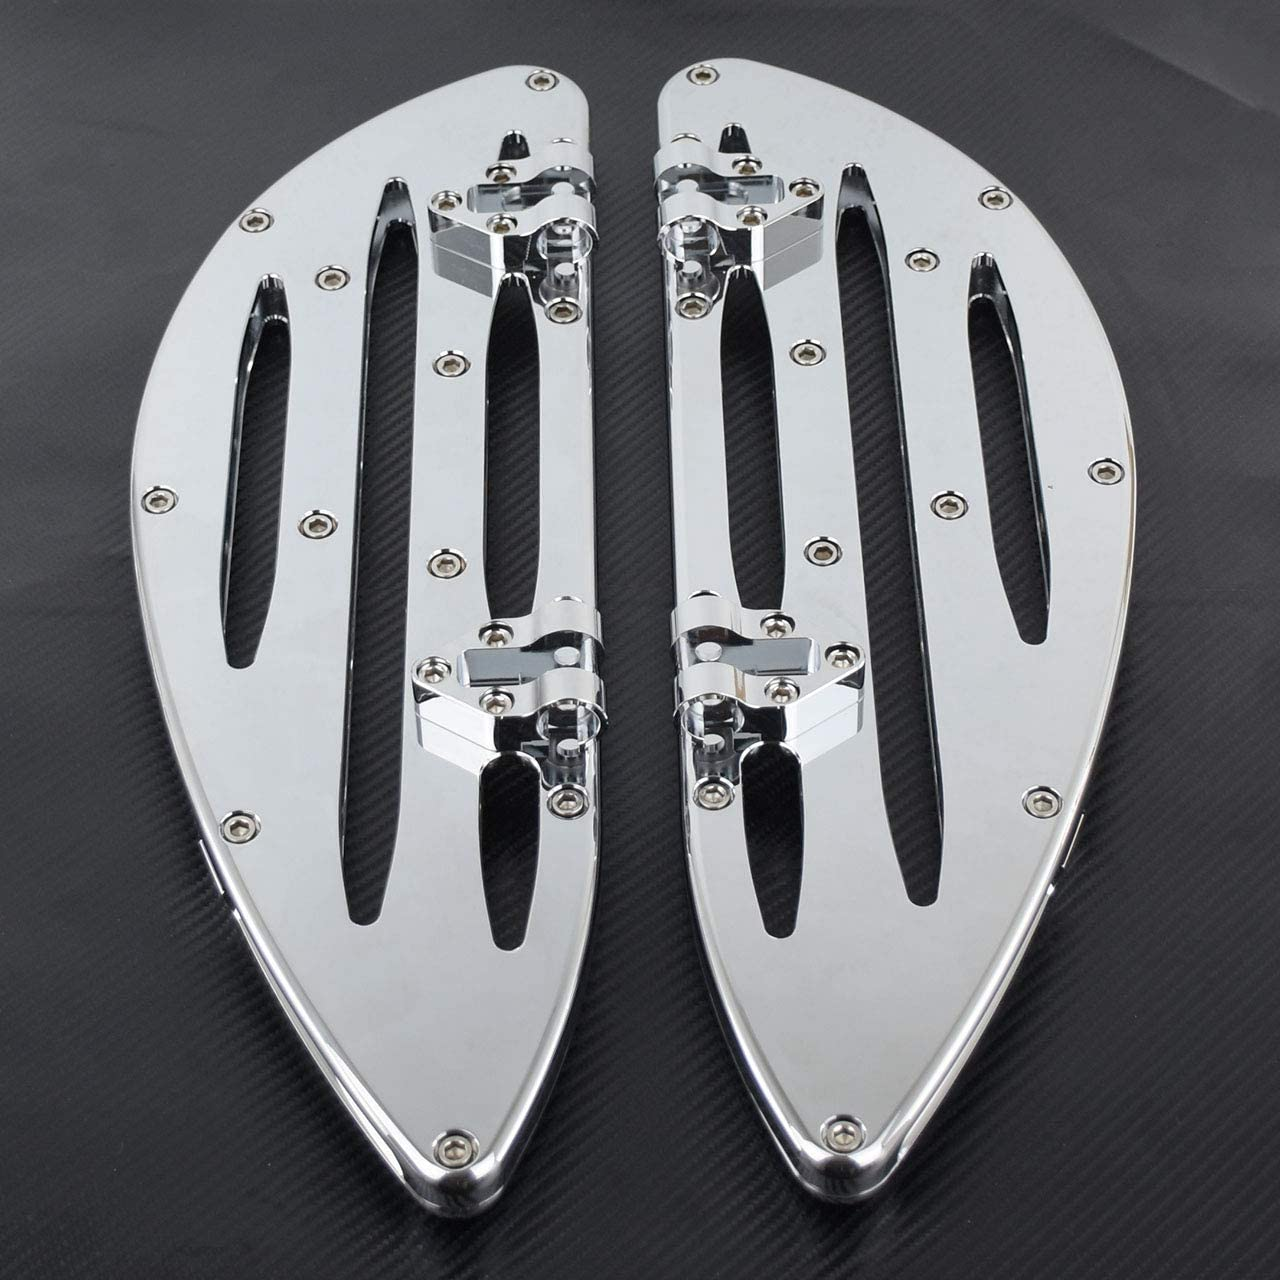 YHMTIVTU Motorcycle Front Floorboards Driver Stretched Floorboards Compatible with Harley Touring Softail Street Road Glide Dyna Chrome